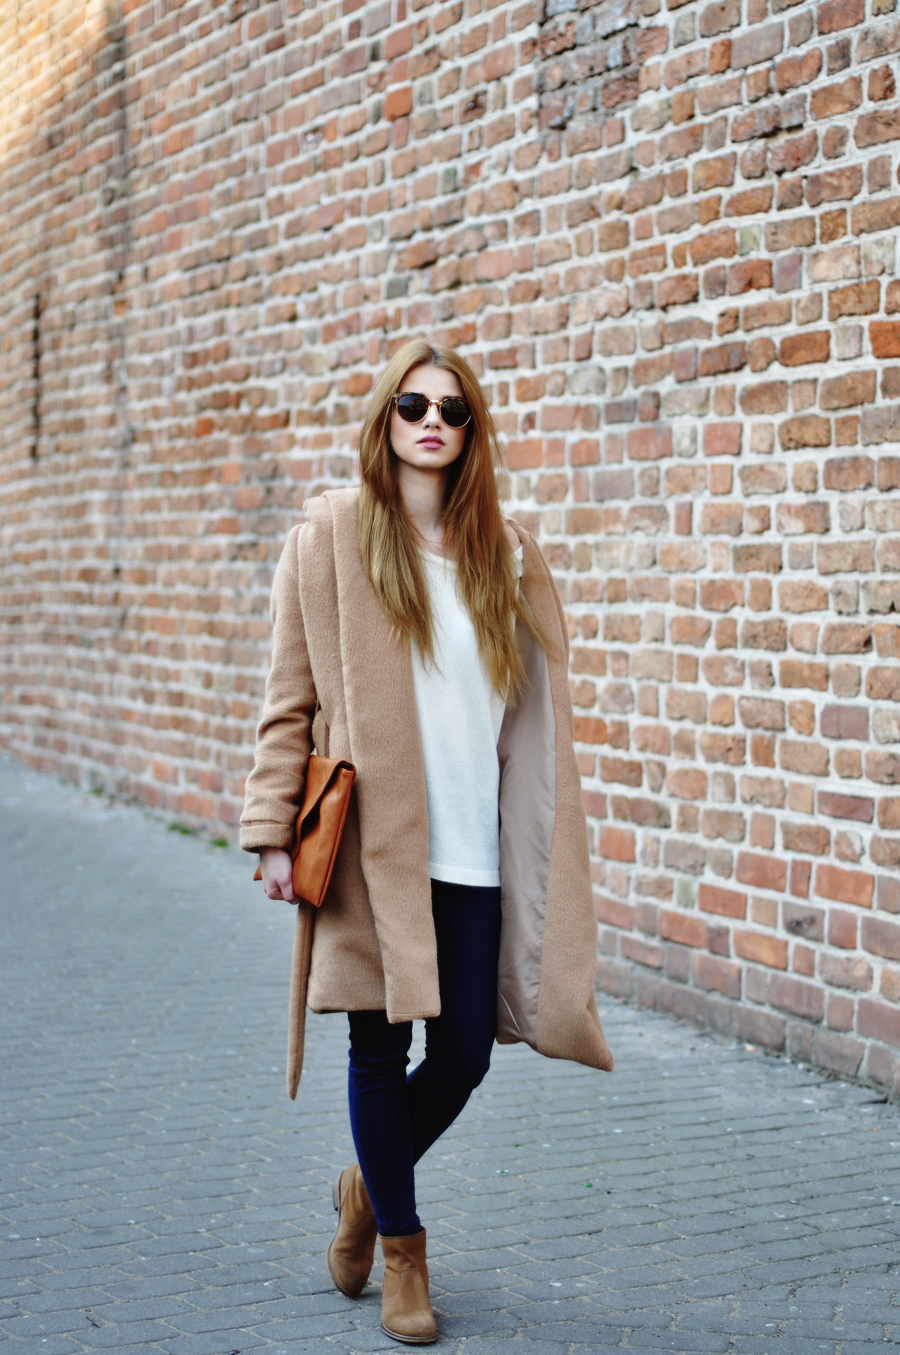 Iga Wysocka is wearing a camel coat and white sweater from Oasap, jeans and clutch from Pull & Bear and the shoes are from Oysho